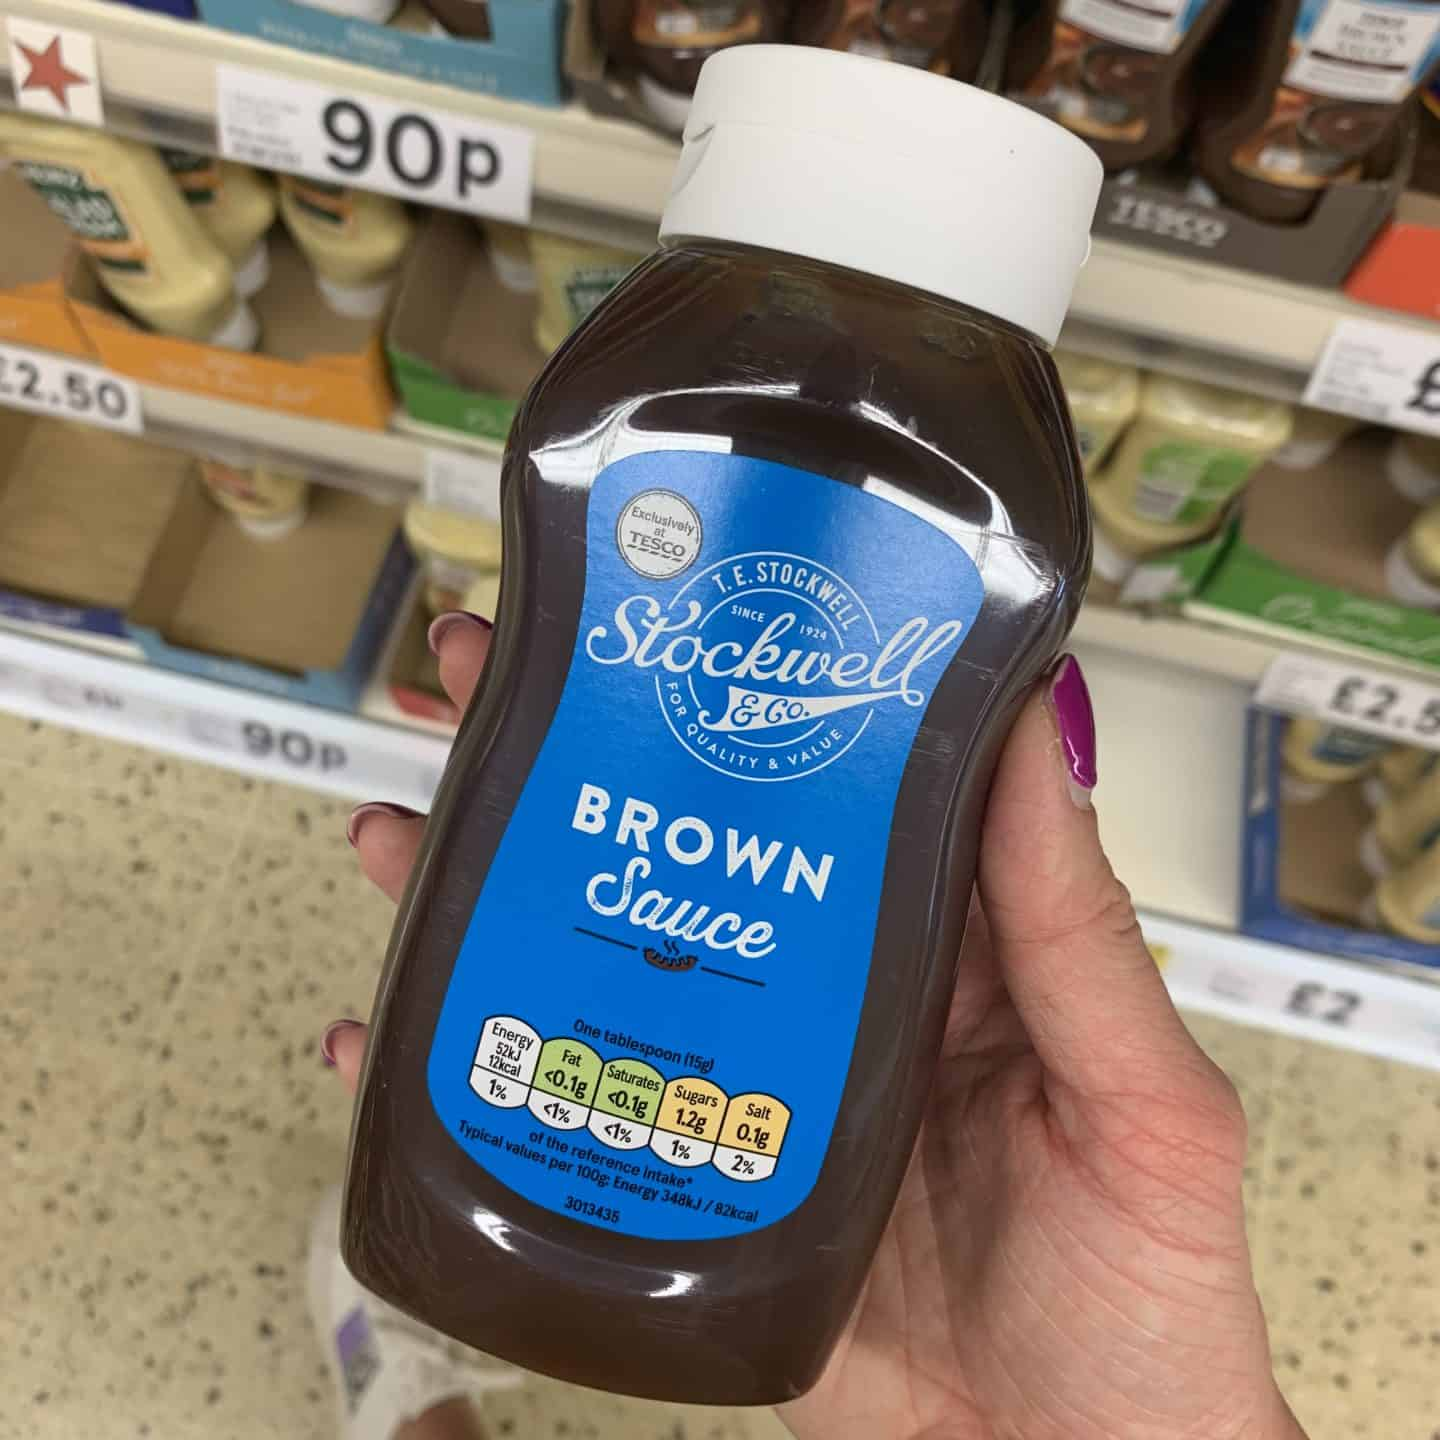 gluten free new products september 2019 7